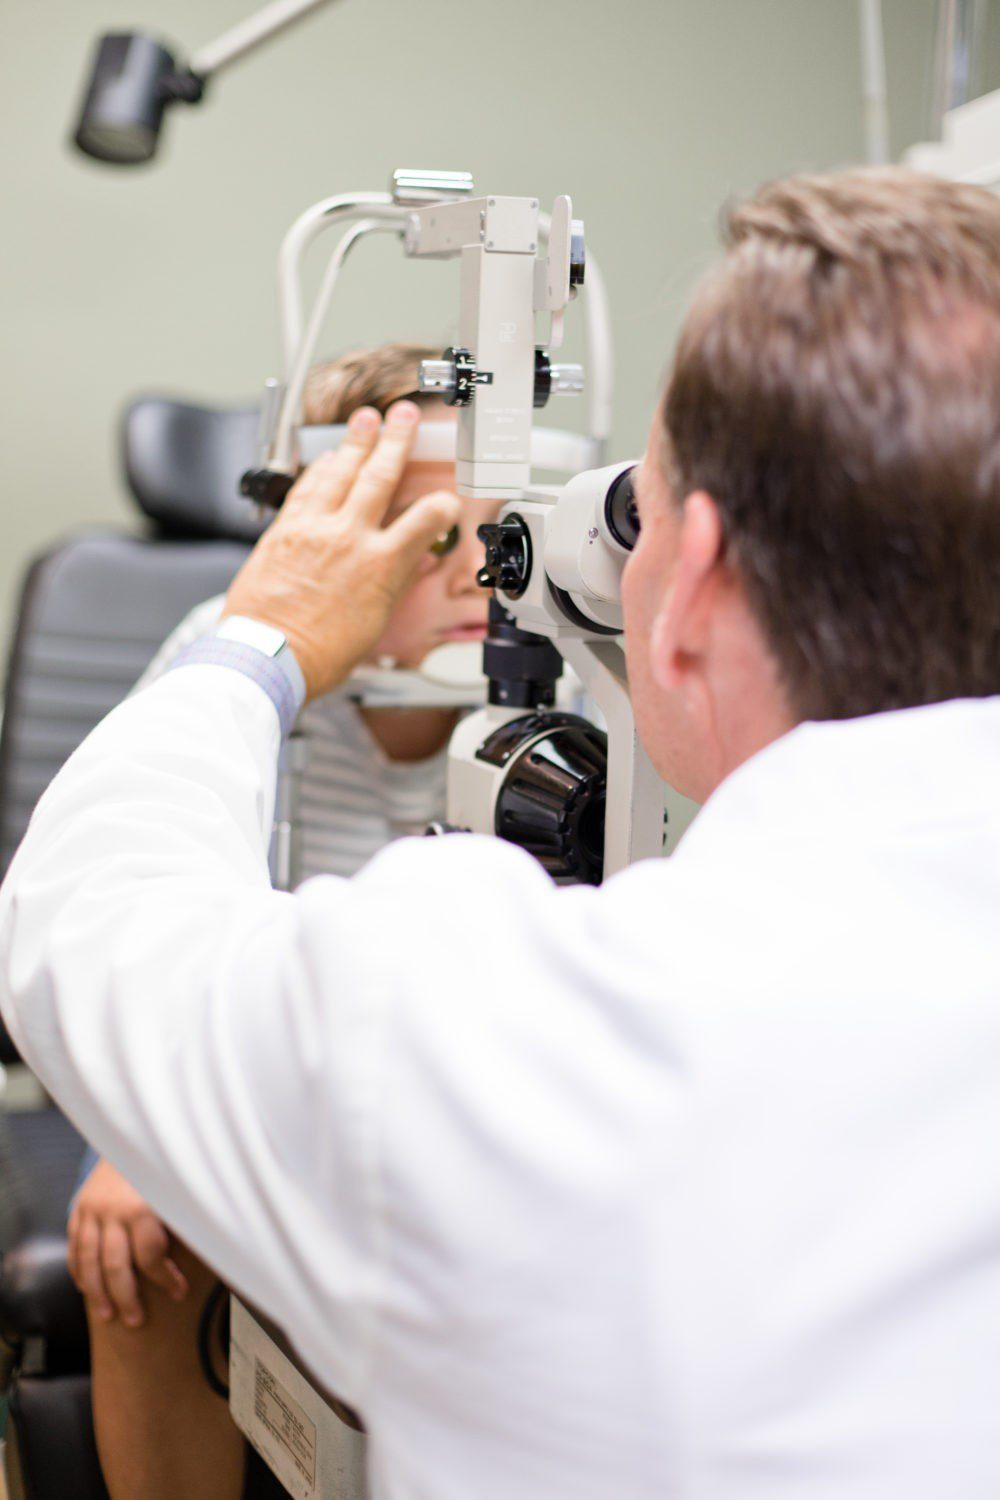 Back to School Eye Exam: How to Prepare your Child for a Successful Academic Year | Back to School Eye Exam: How to Prepare your Child for a Successful Academic Year by popular Florida lifestyle blog, Fresh Mommy Blog: image of a young boy getting his eyes examined by an eye doctor.